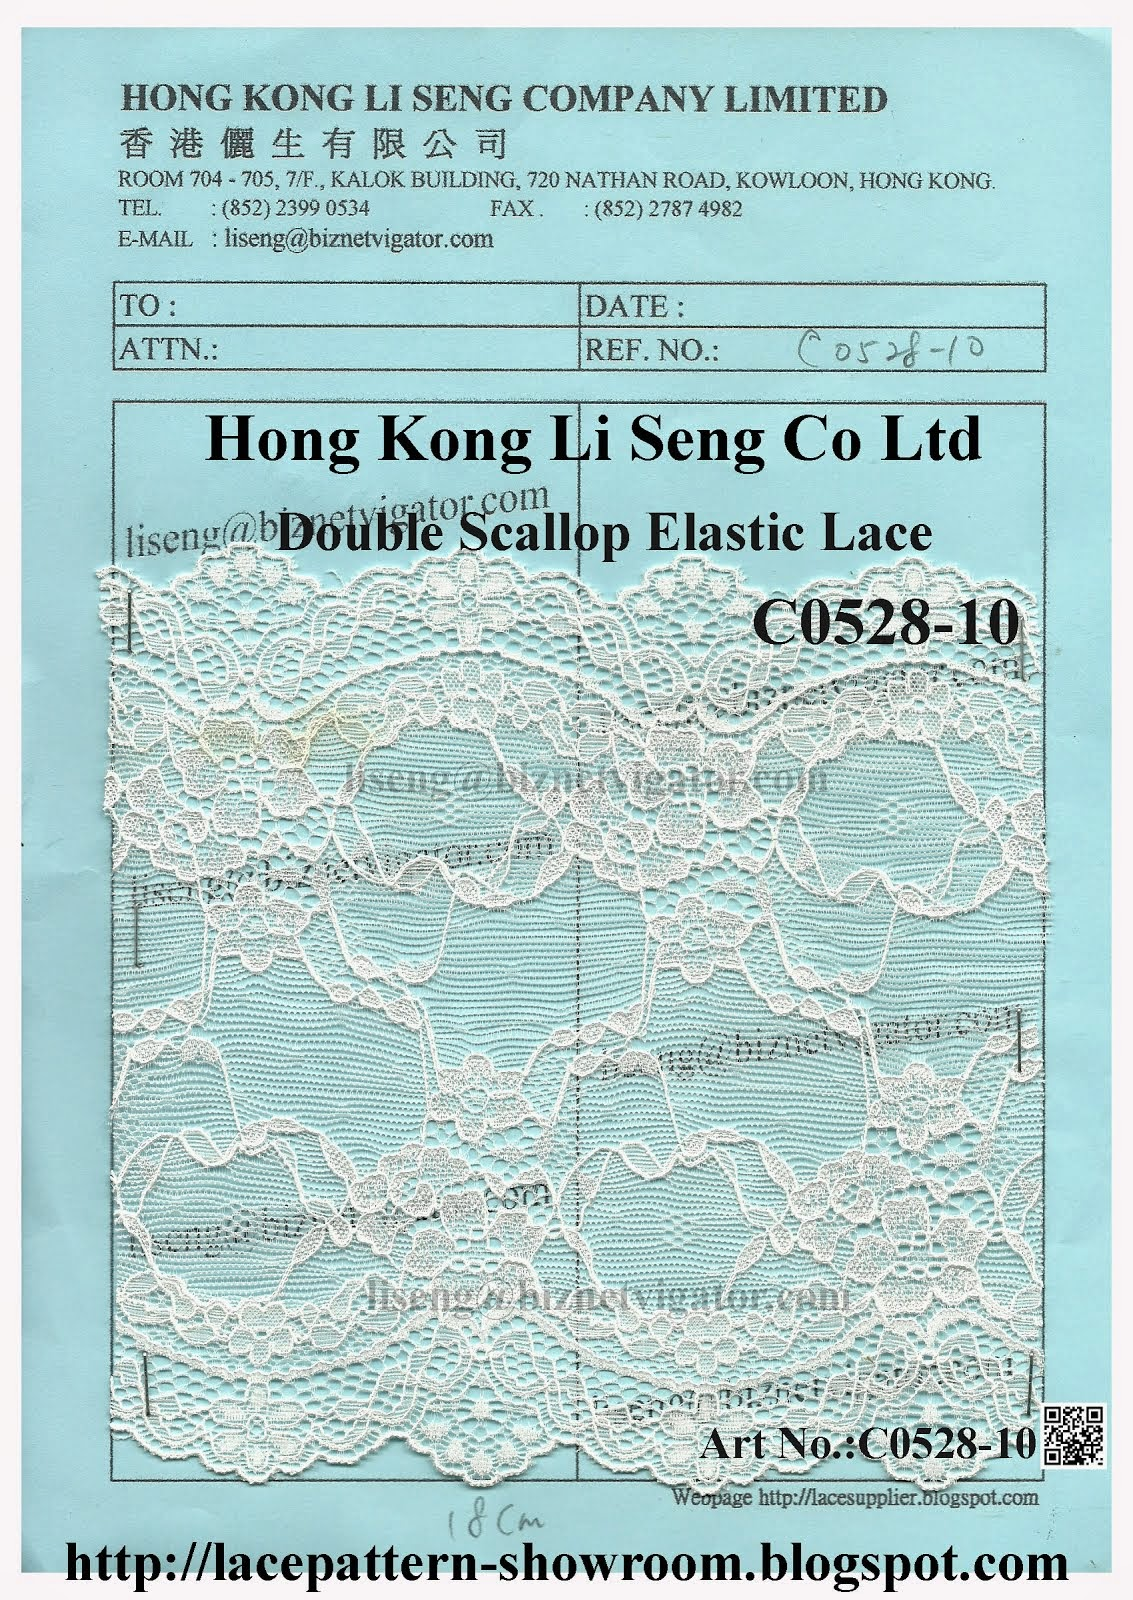 Double Scallop Elastic Lace Manufacturer - Hong Kong Li Seng Co Ltd